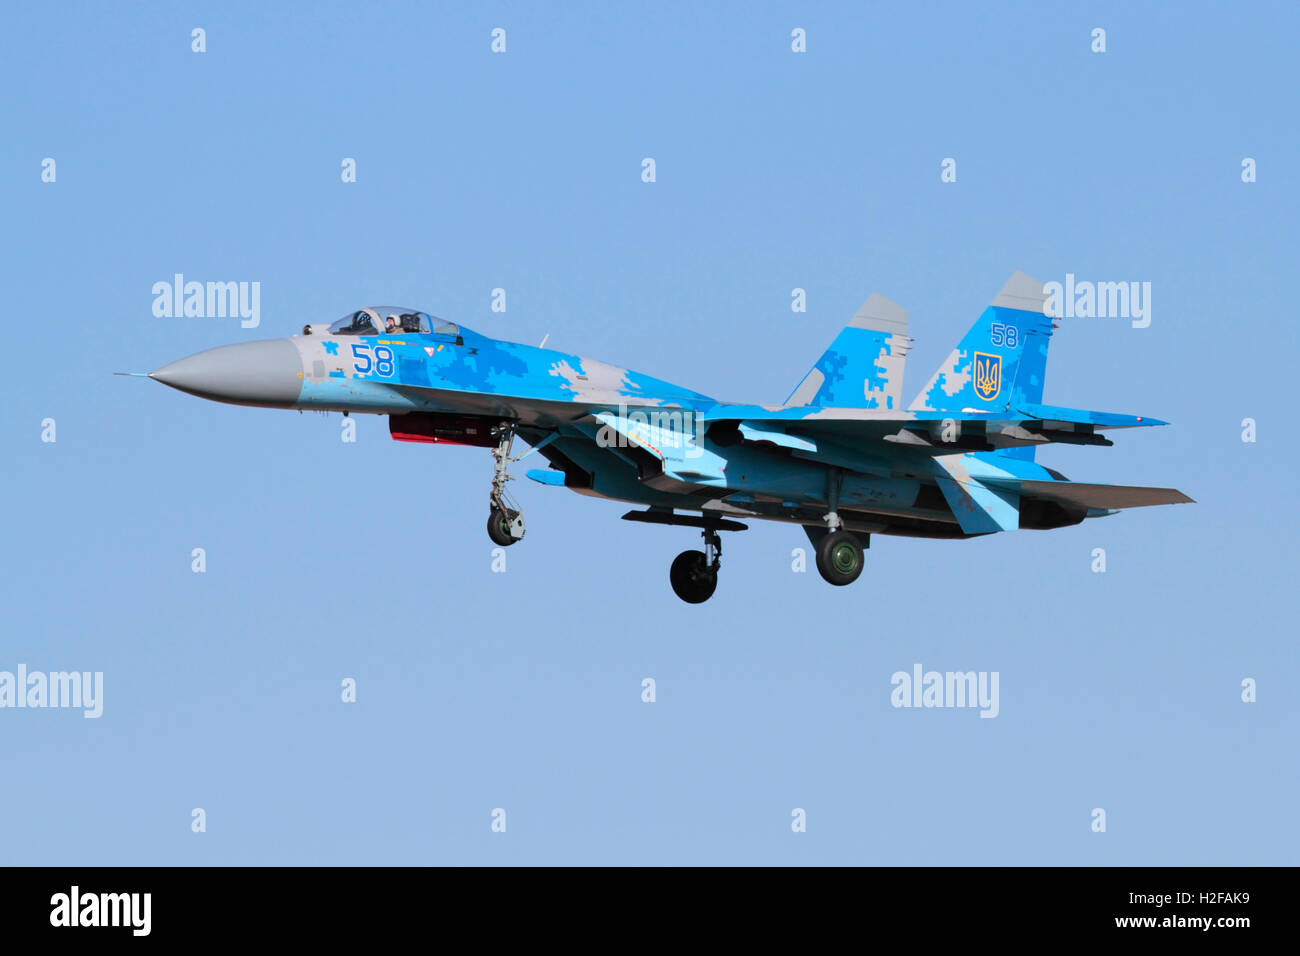 Sukhoi Su-27 Flanker fighter jet aeroplane of the Ukraine Air Force. Military aviation. - Stock Image